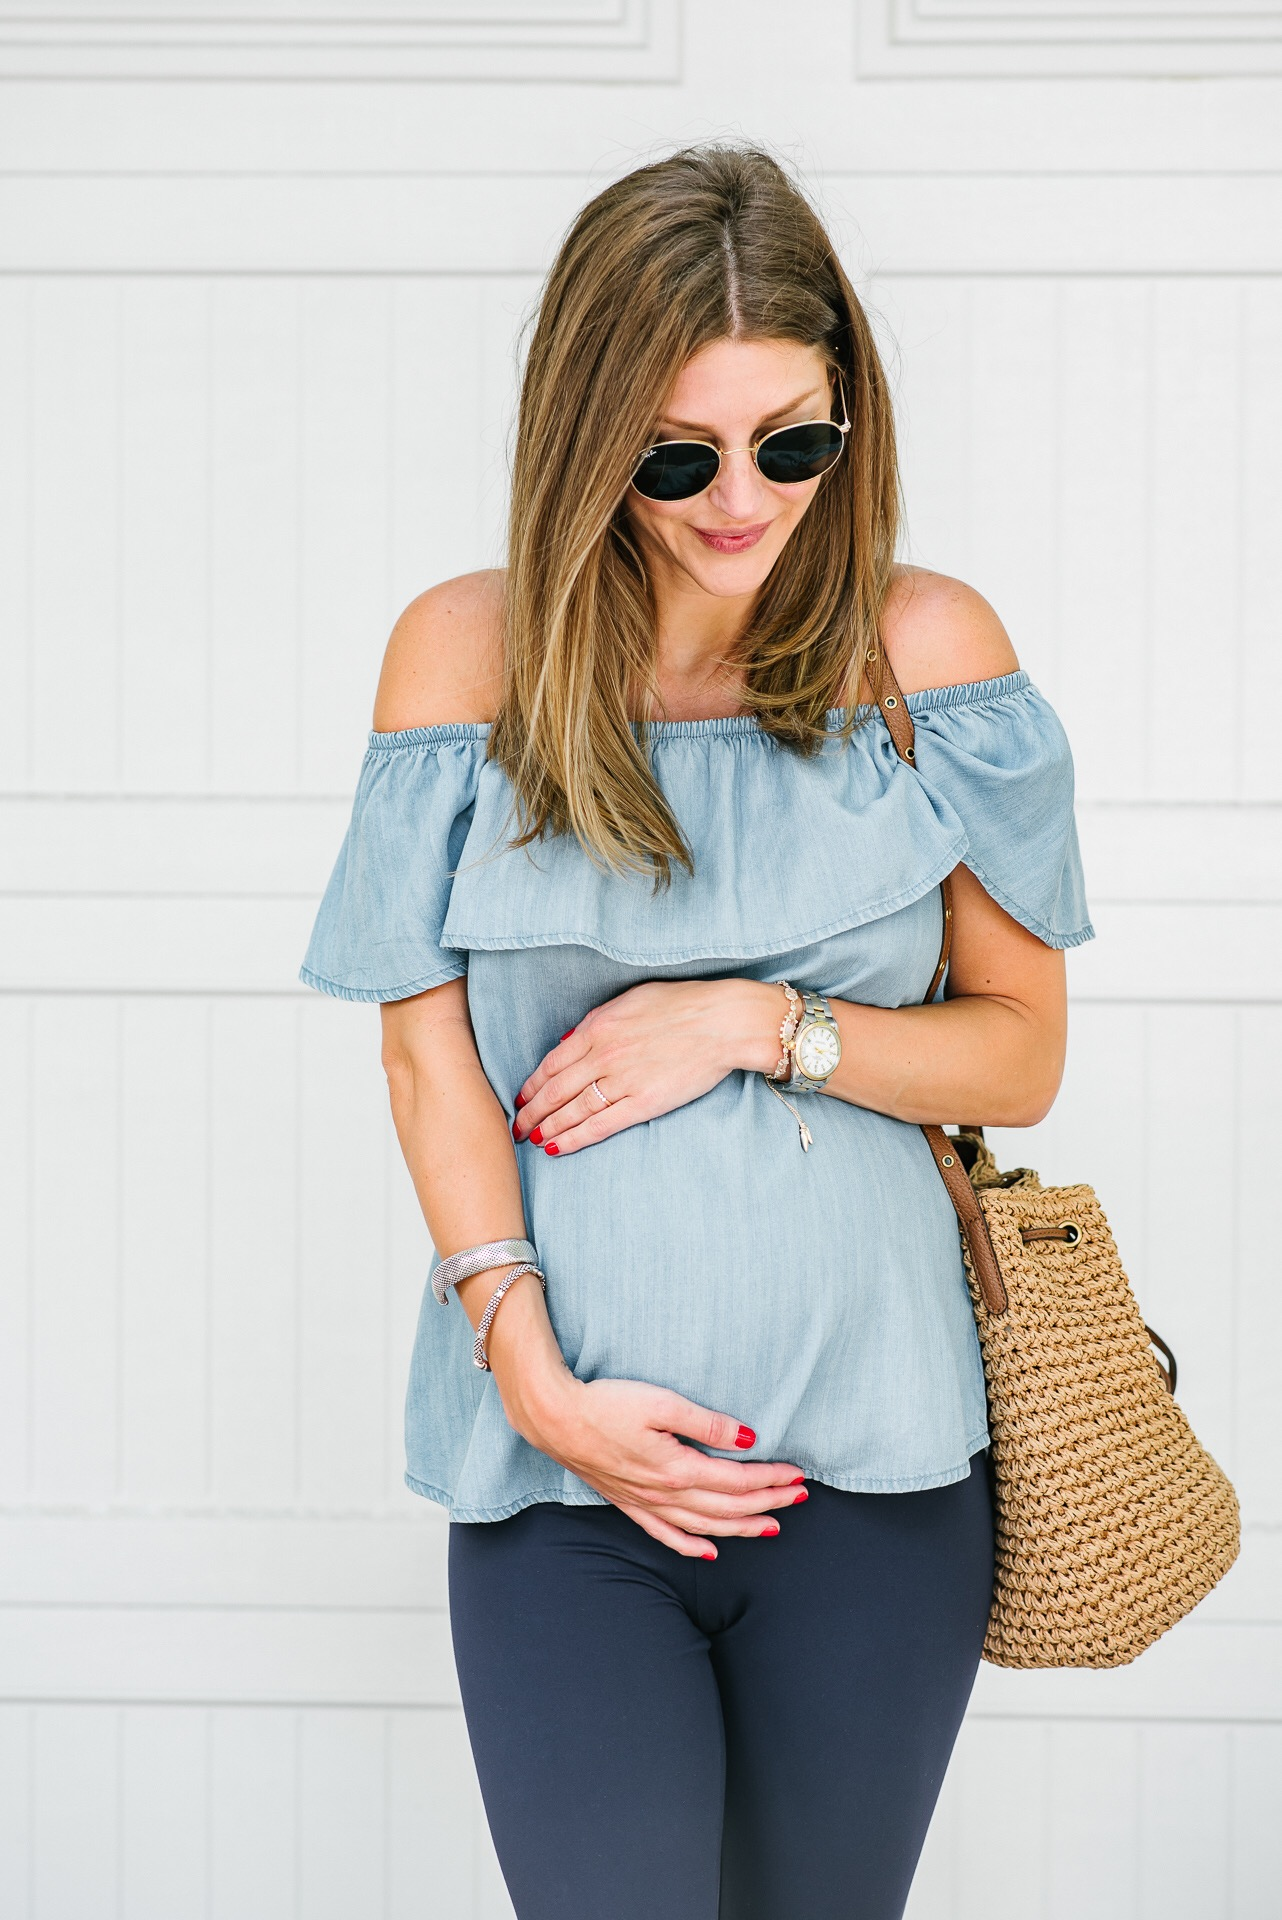 Blogger AshLee Frazier showing off her baby bump